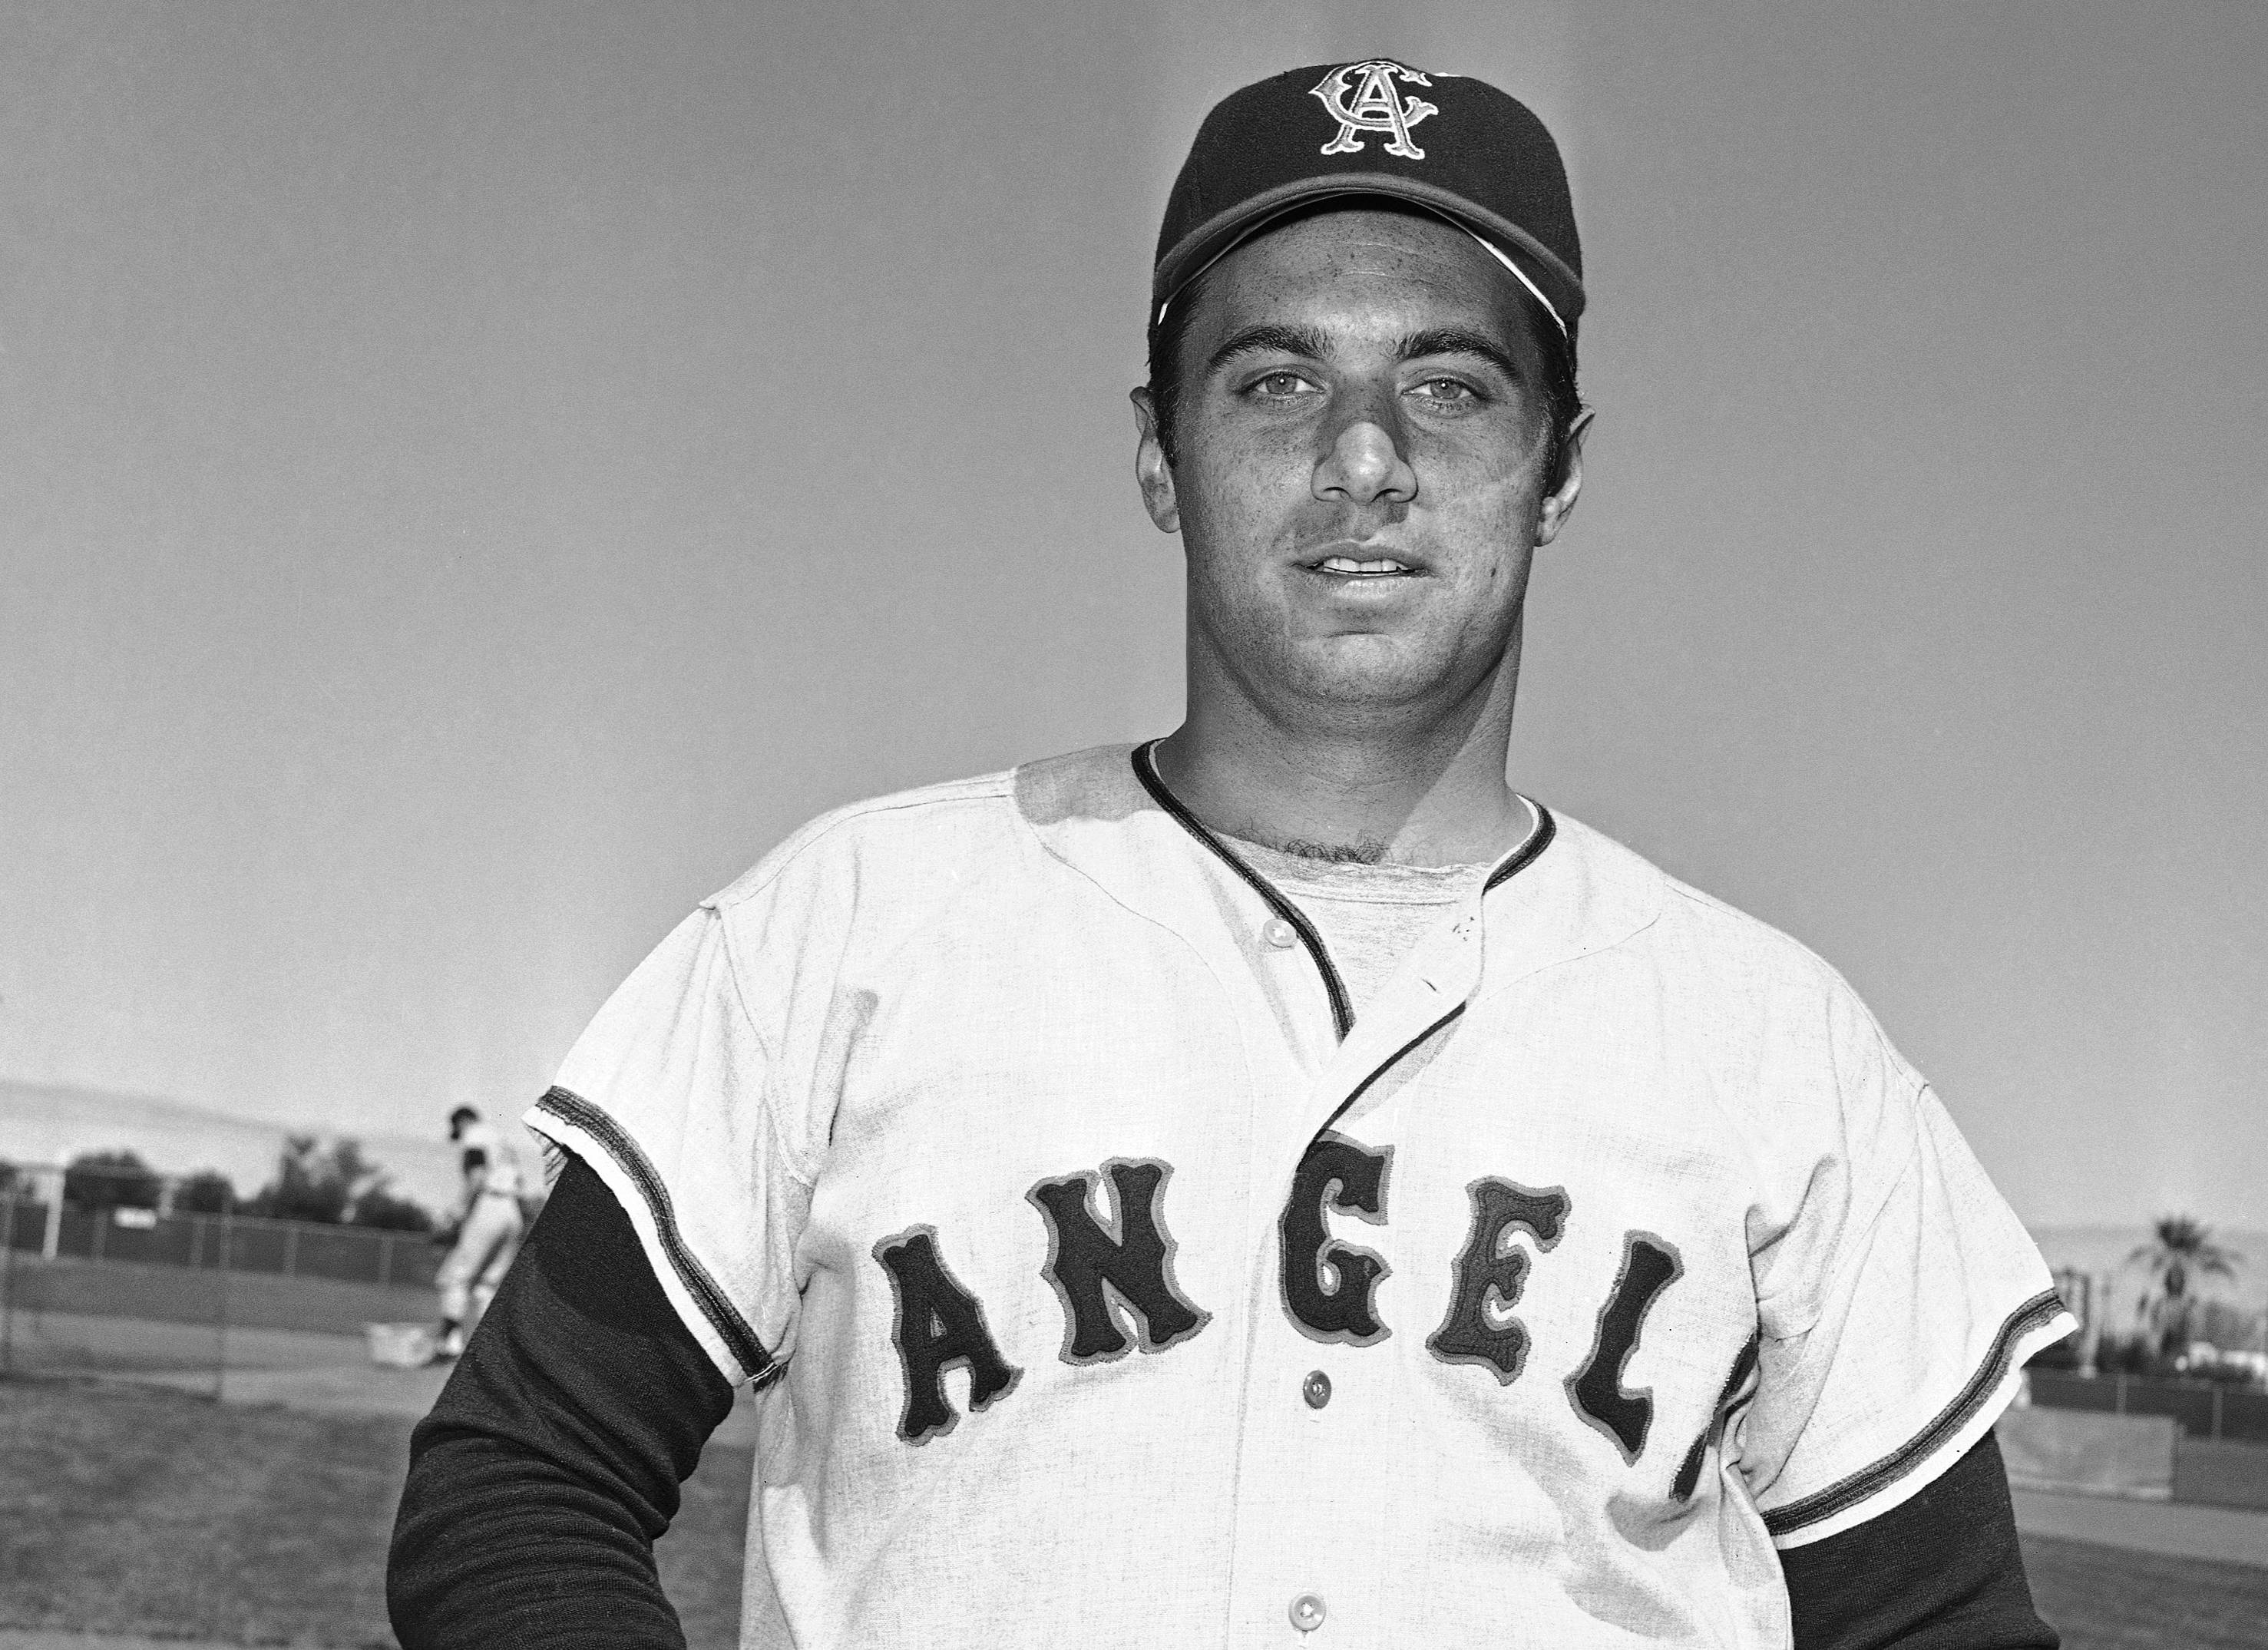 This March 1968 file photo shows Jim Fregosi of the California Angels in Palm Springs, Calif. Fregosi, a former All-Star who won more than 1,000 games as a manager for four teams, has died after an apparent stroke. He was 71. The Atlanta Braves say they were notified by a family member that died early Friday, Feb. 14, 2014, in Miami, where he was hospitalized after the apparent stroke while on a cruise with baseball alumni.